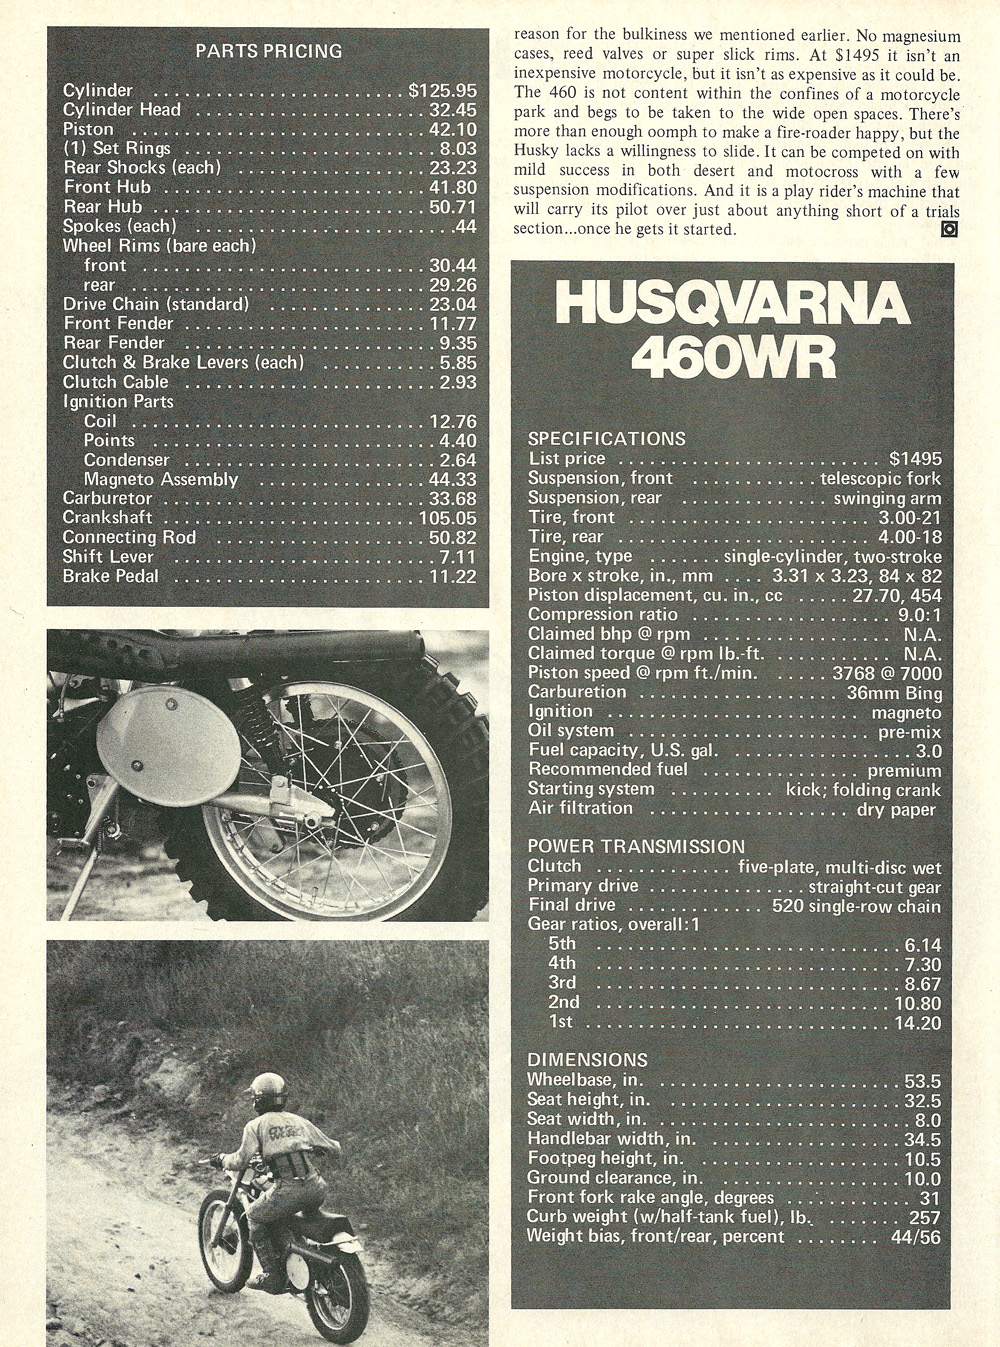 1975 Husqvarna 460WR road test 06.jpg